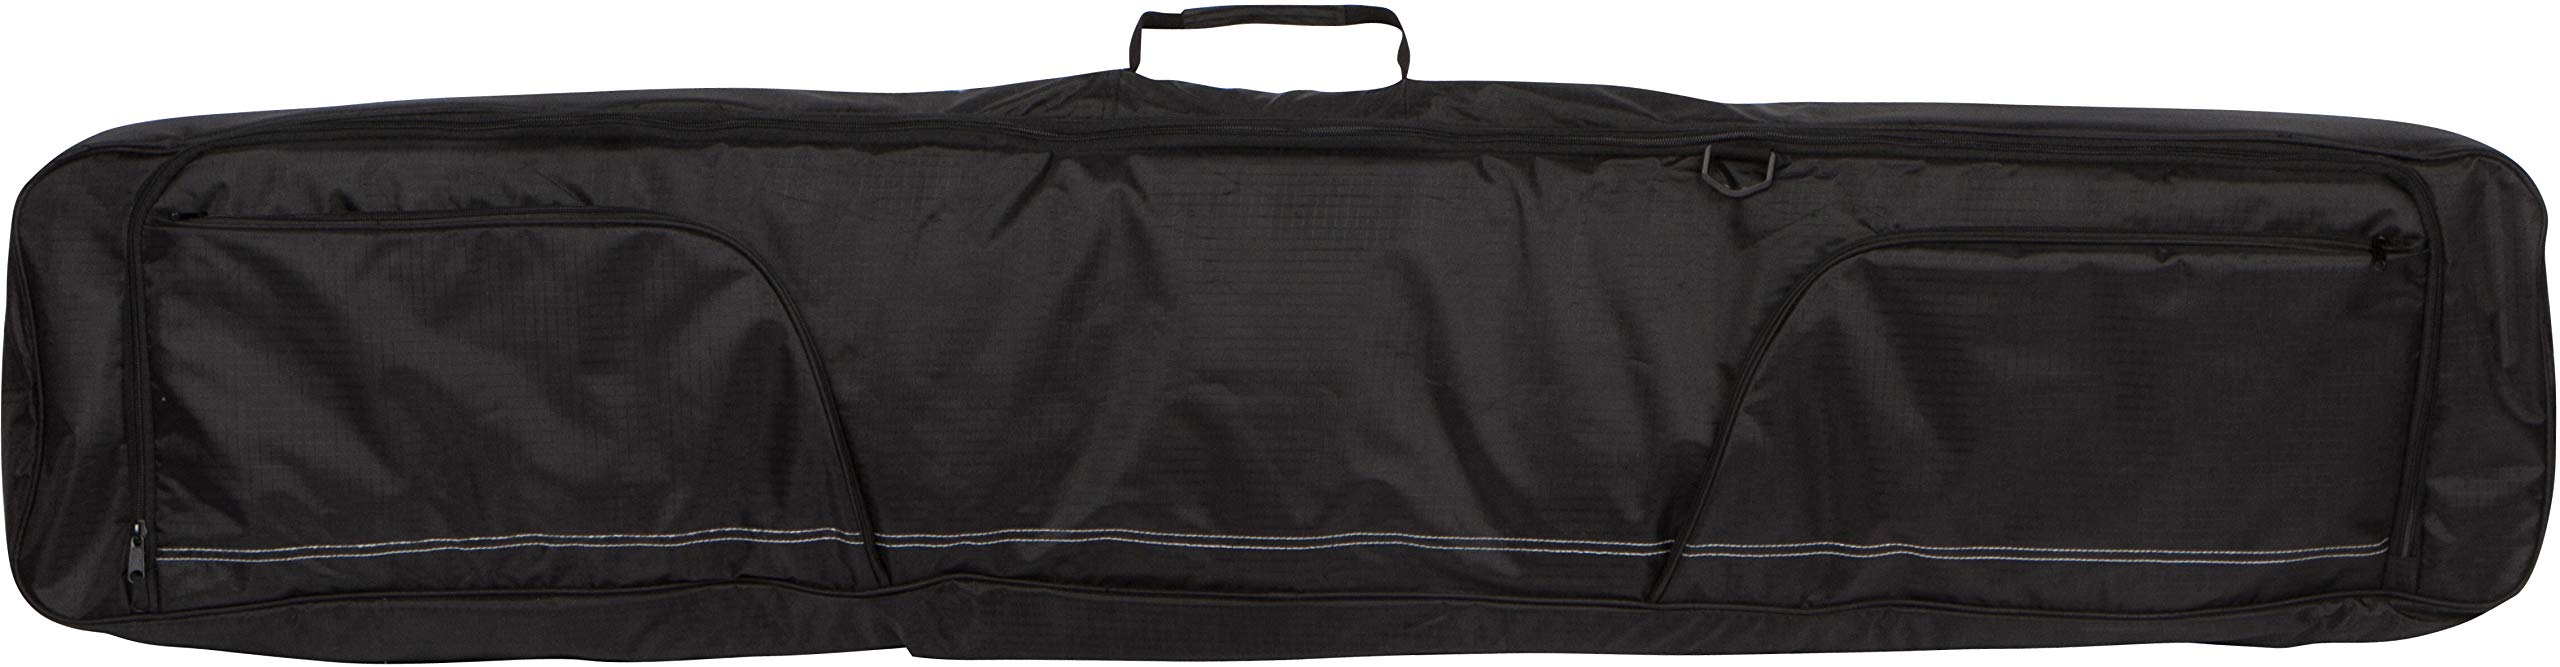 Snowboard Padded Travel Bag - Up to 160CM Board With Carry Strap by Trademark Innovations